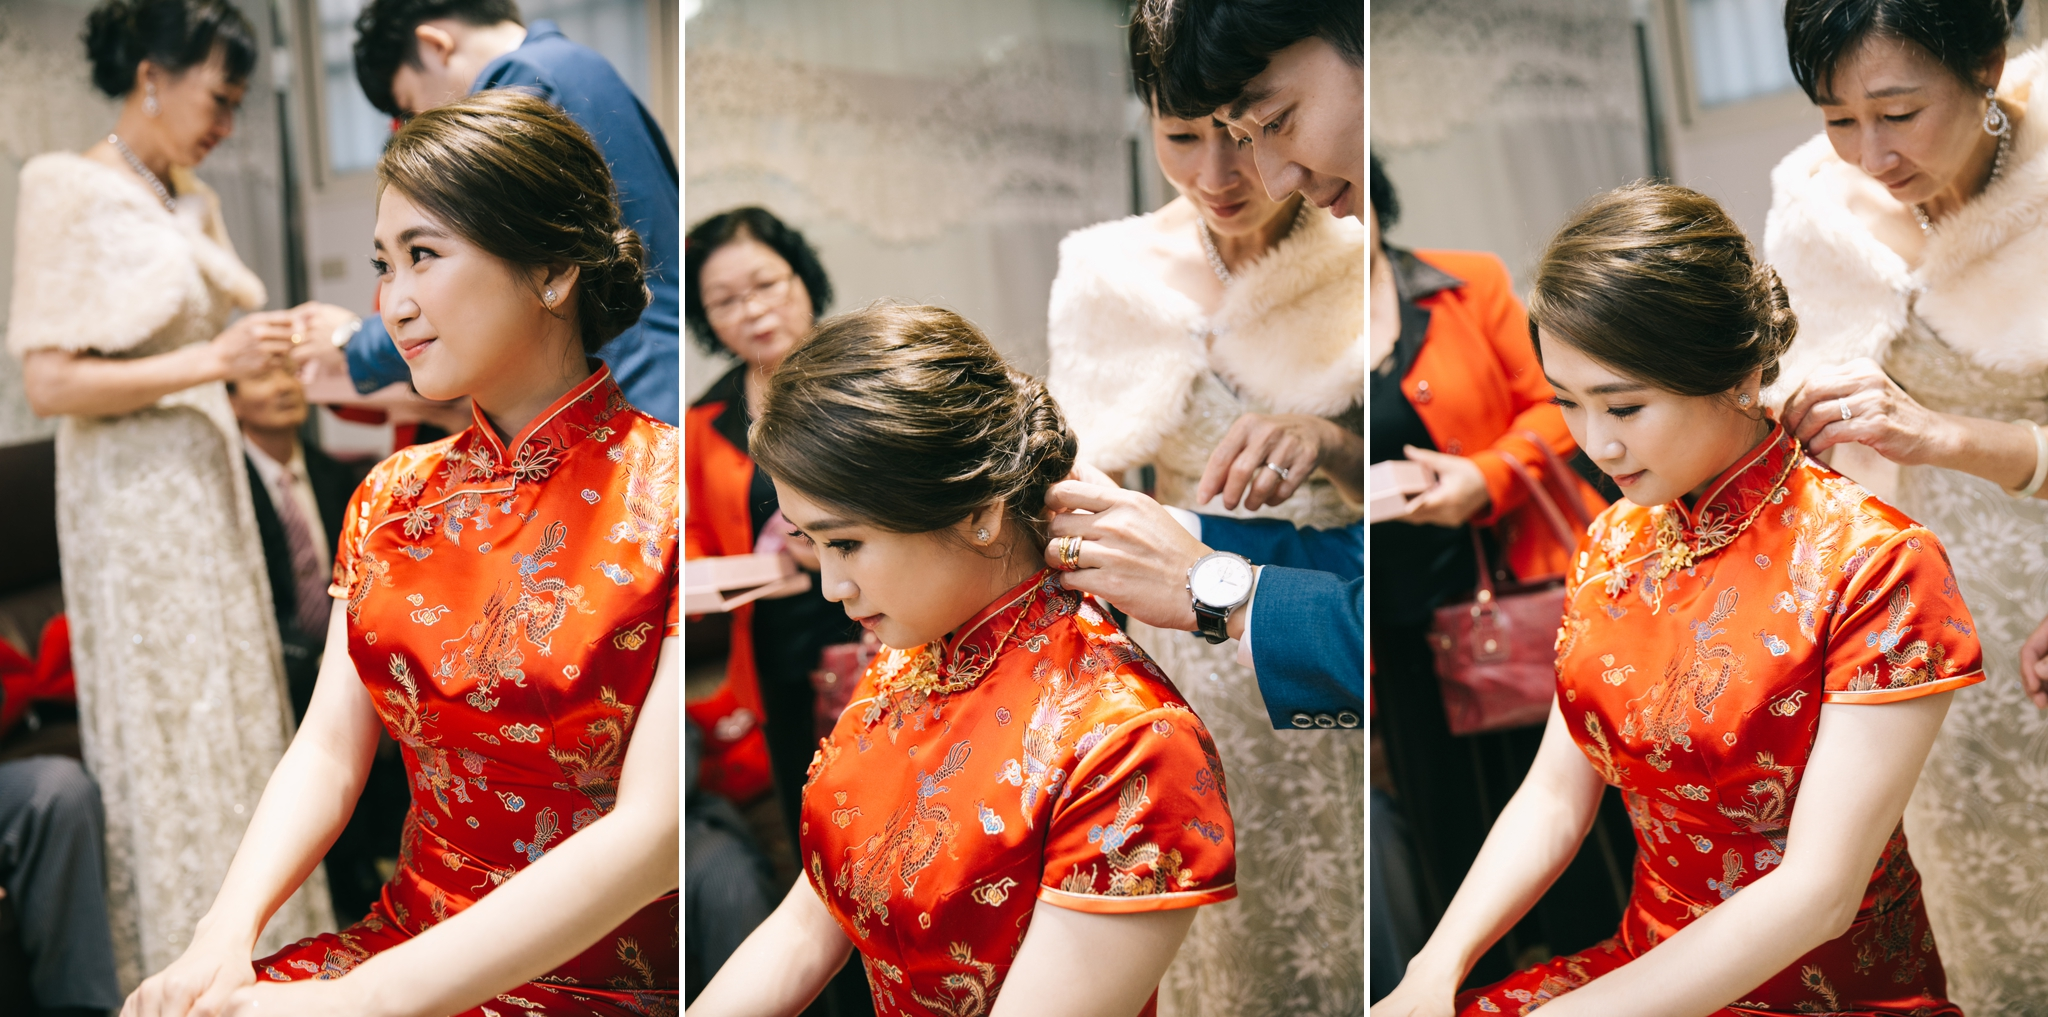 Keddy+Richard-wedding-新莊頤品飯店-041.jpg